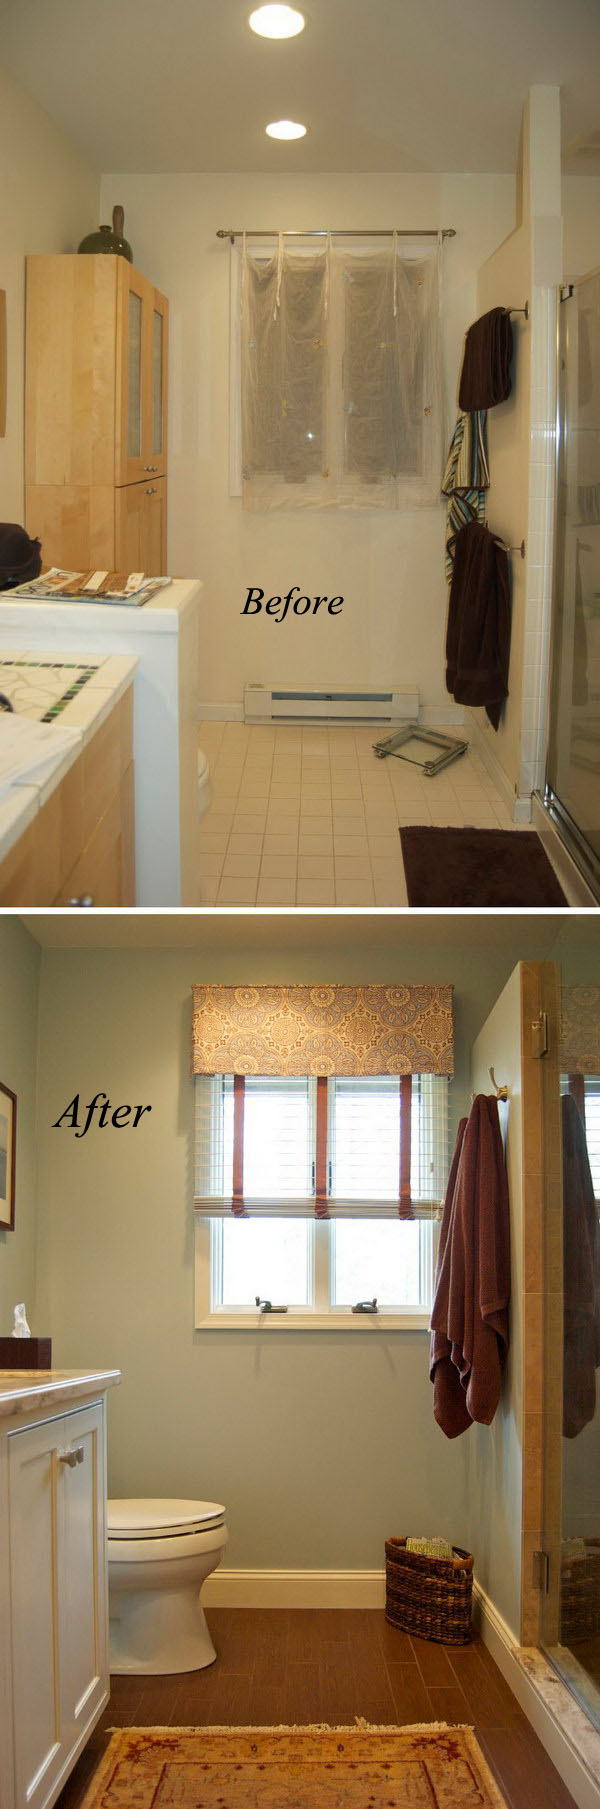 Small Master Bathroom Renovation Before After